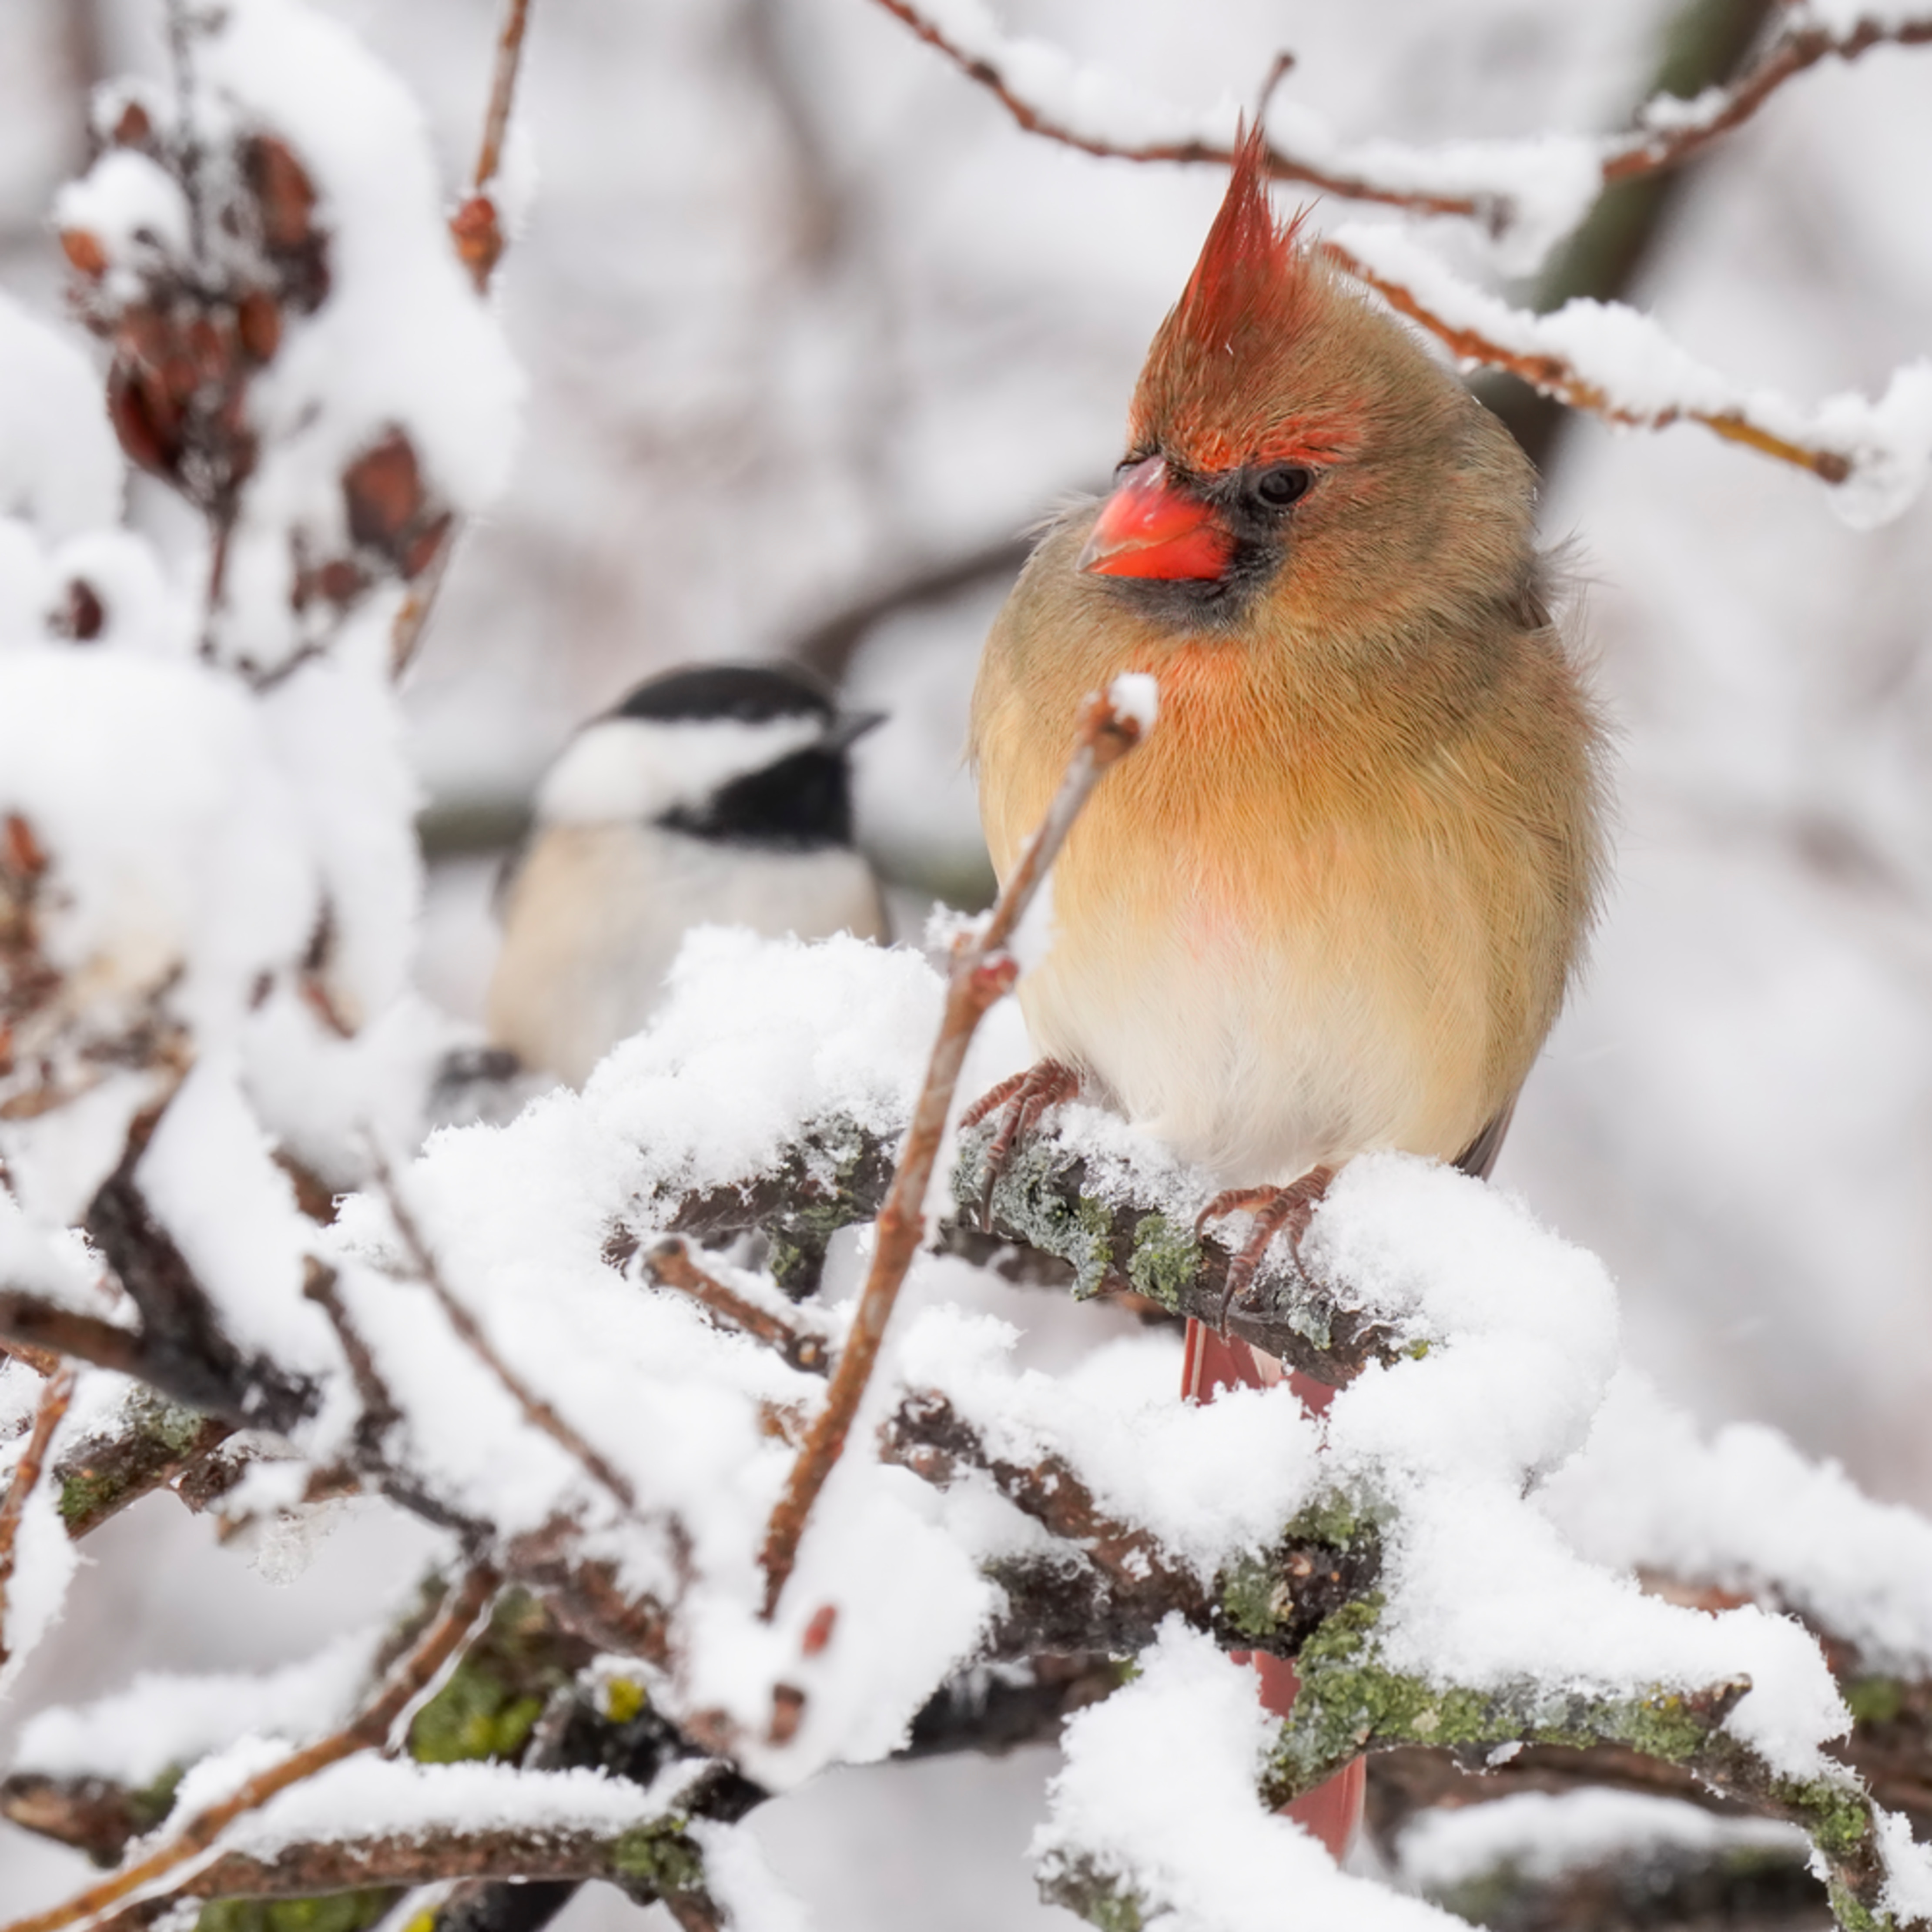 Cardinal and chickadee in the snow bvpnxb